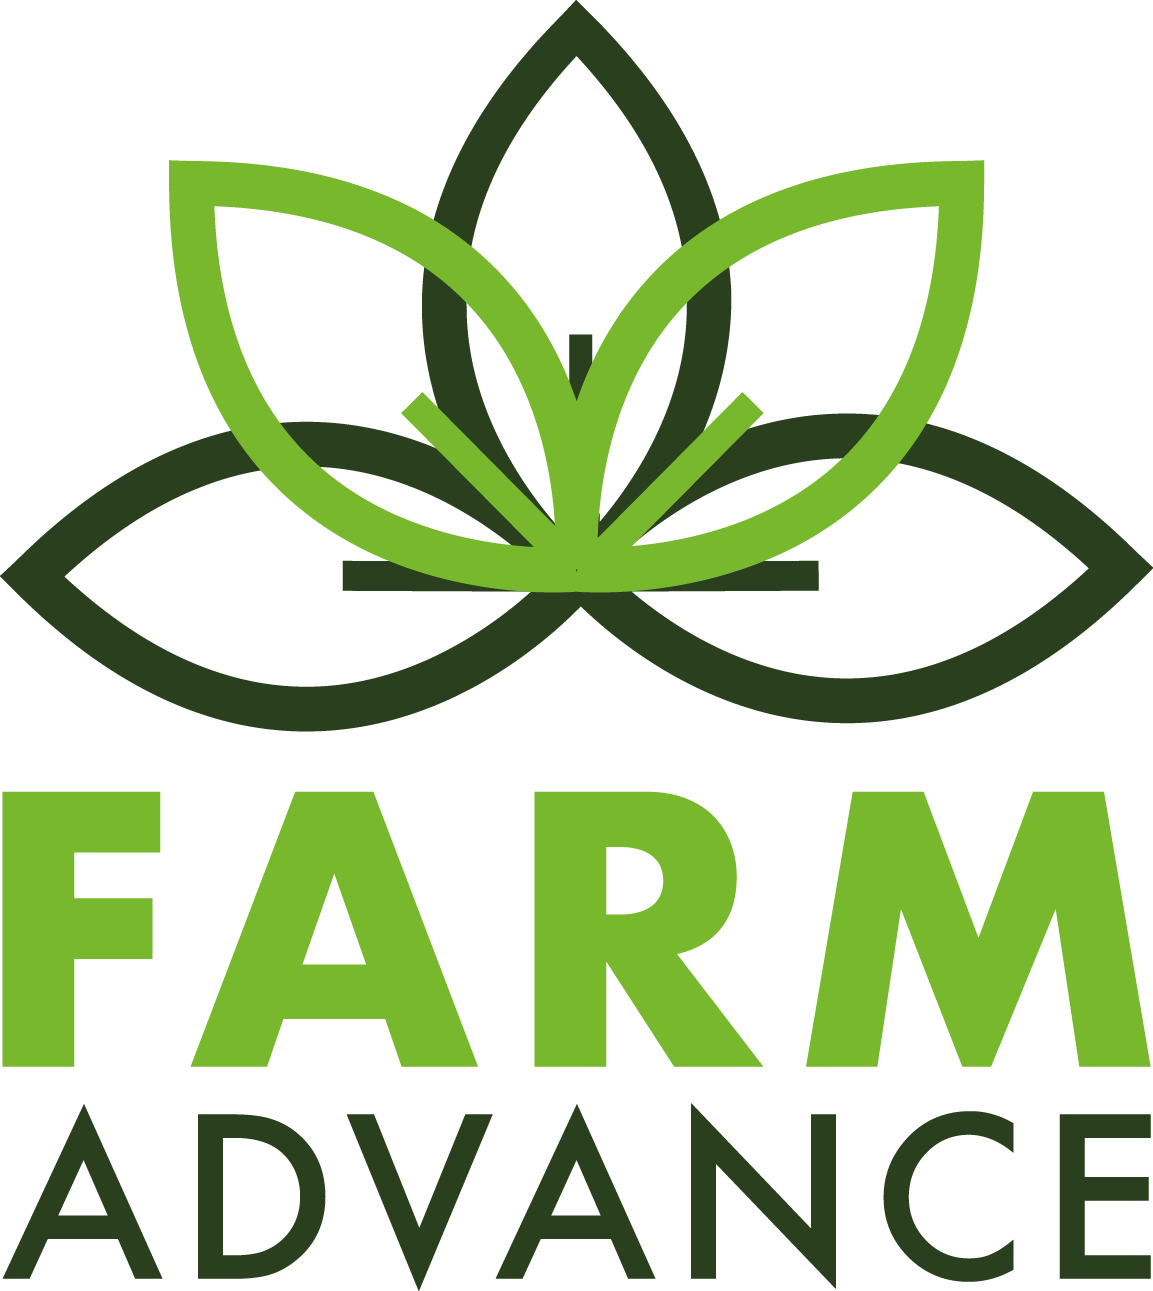 Farm Advance